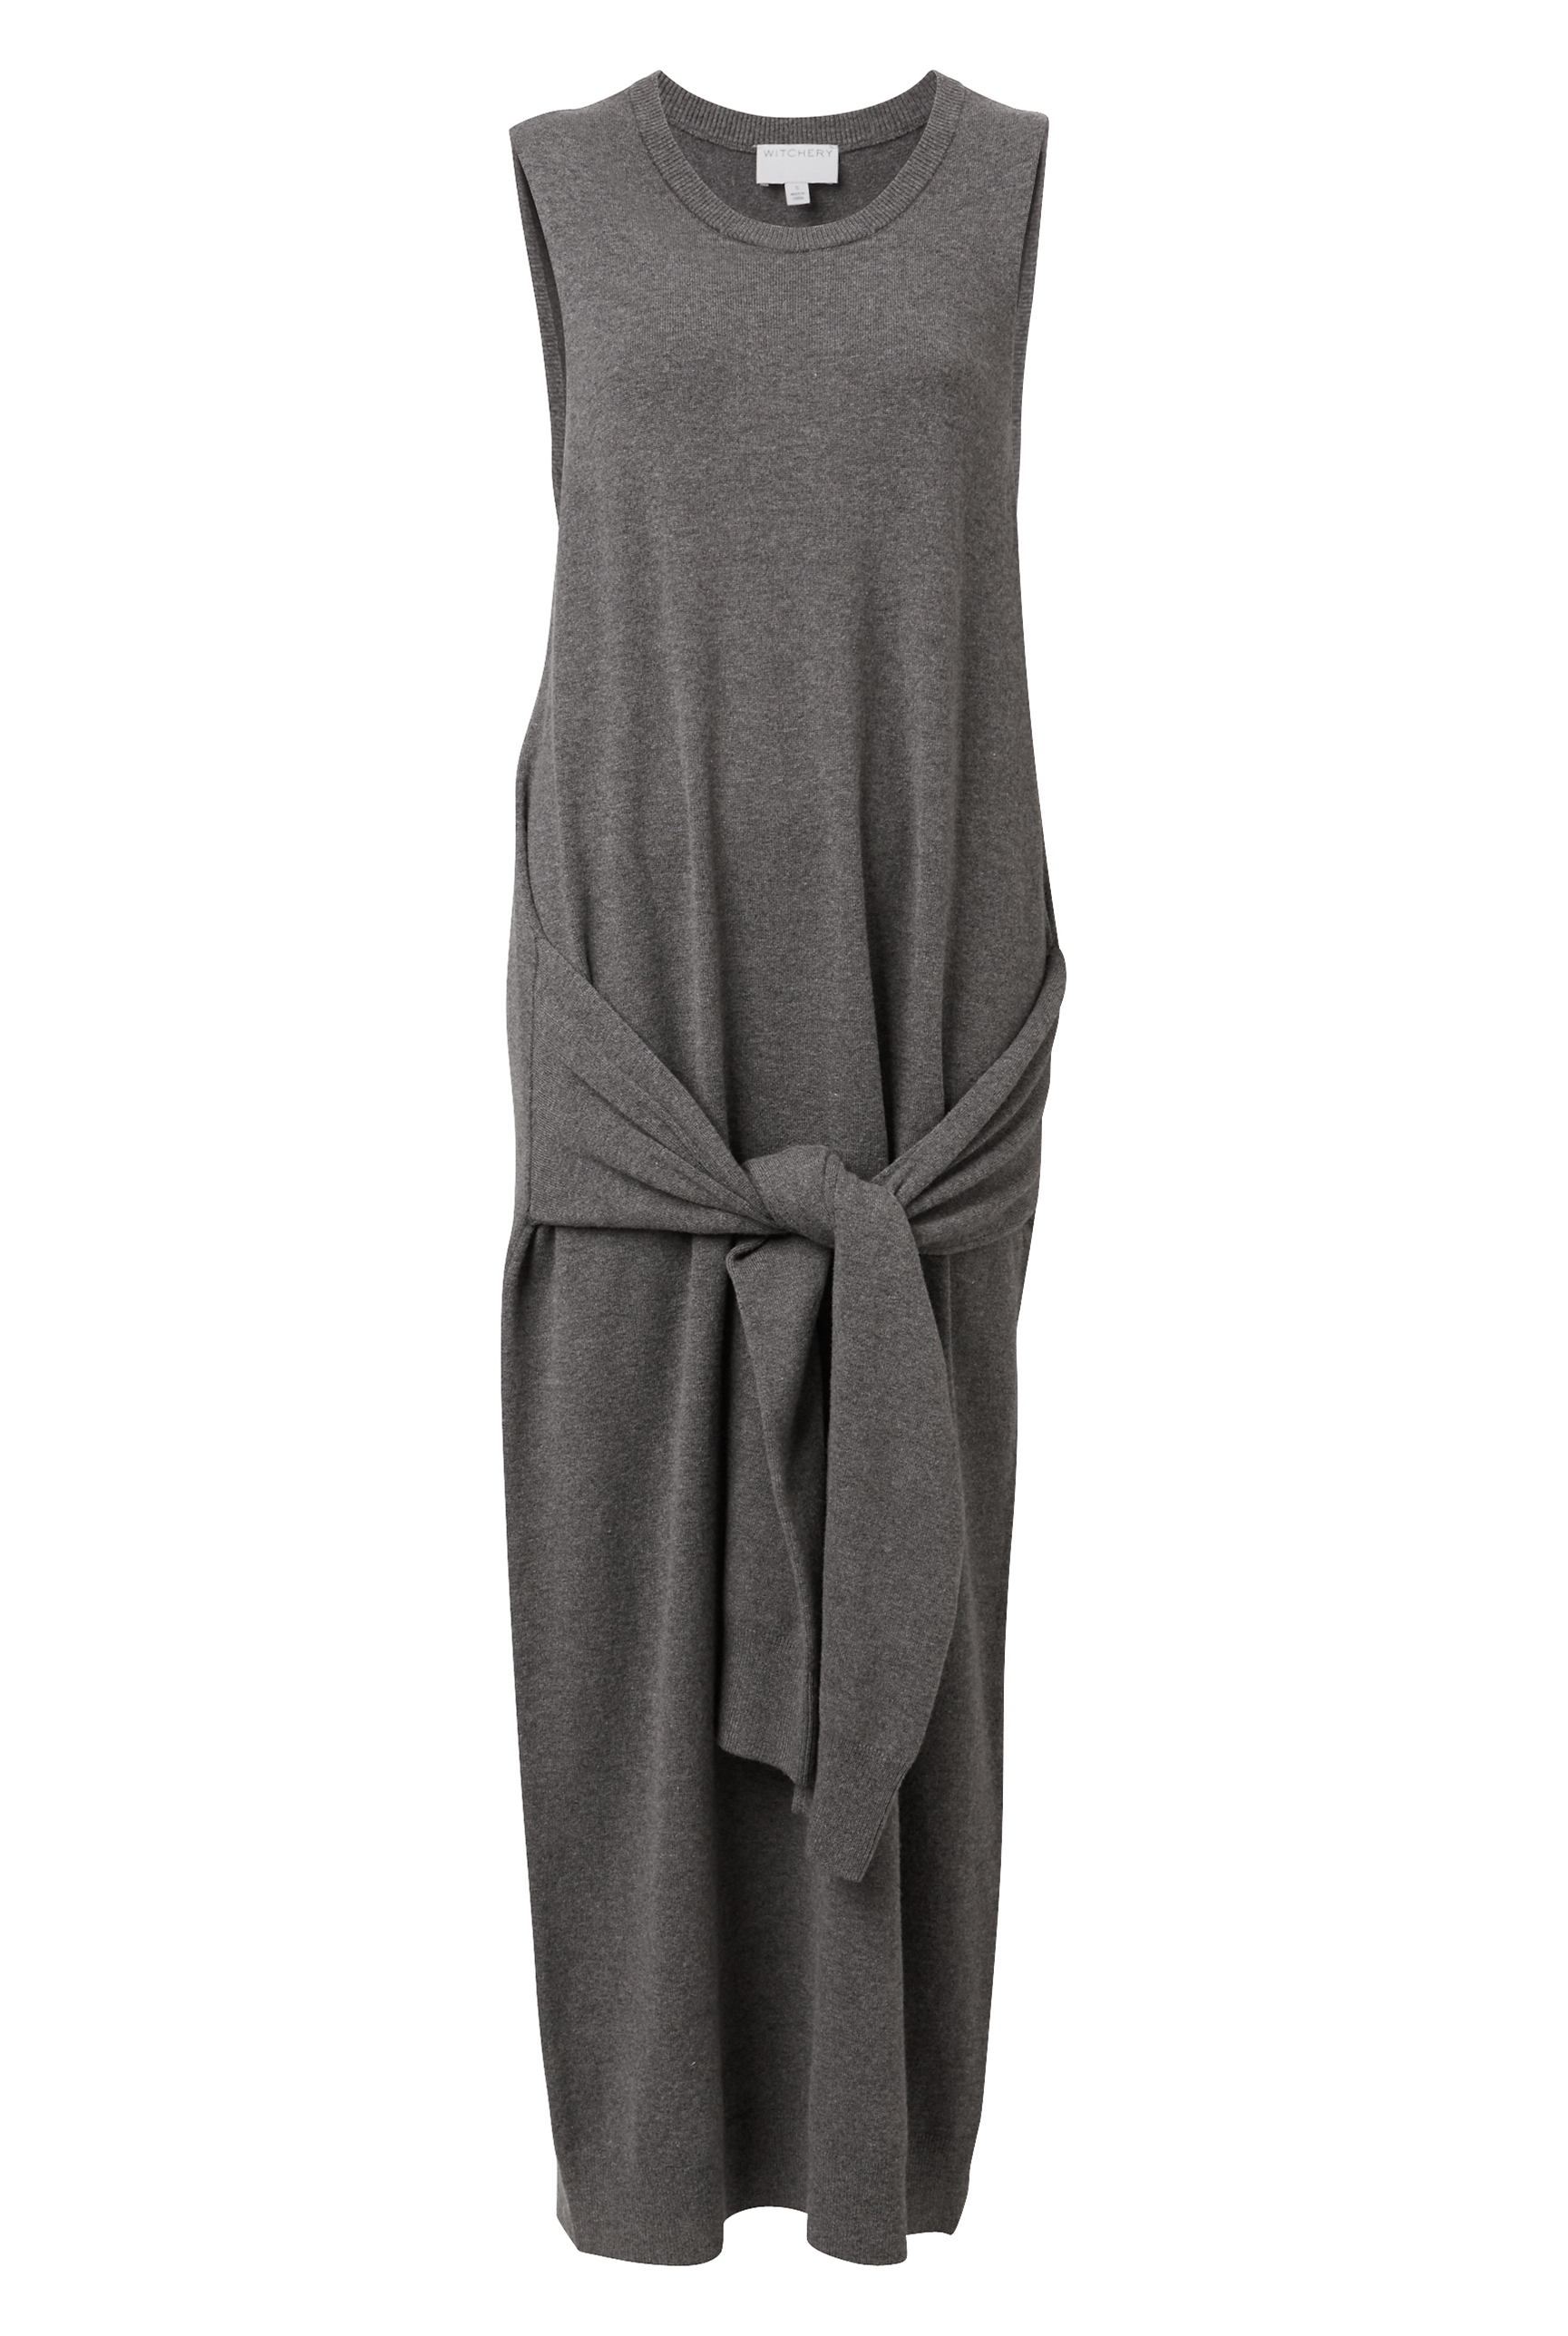 60195870_Witchery Tie Front Knit Dress, RRP$169.90